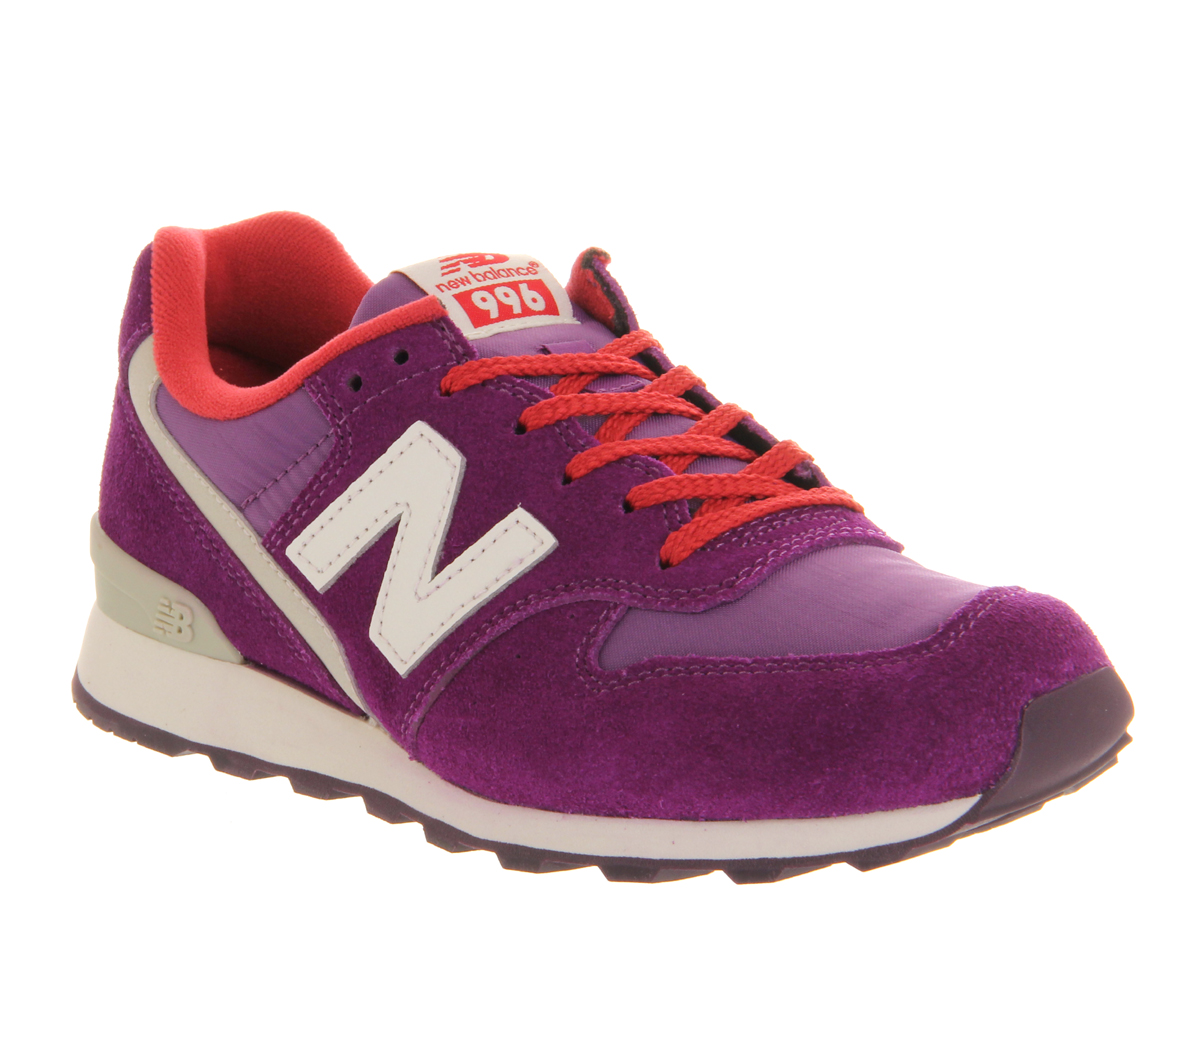 new balance wr996 purple pink trainers shoes. Black Bedroom Furniture Sets. Home Design Ideas